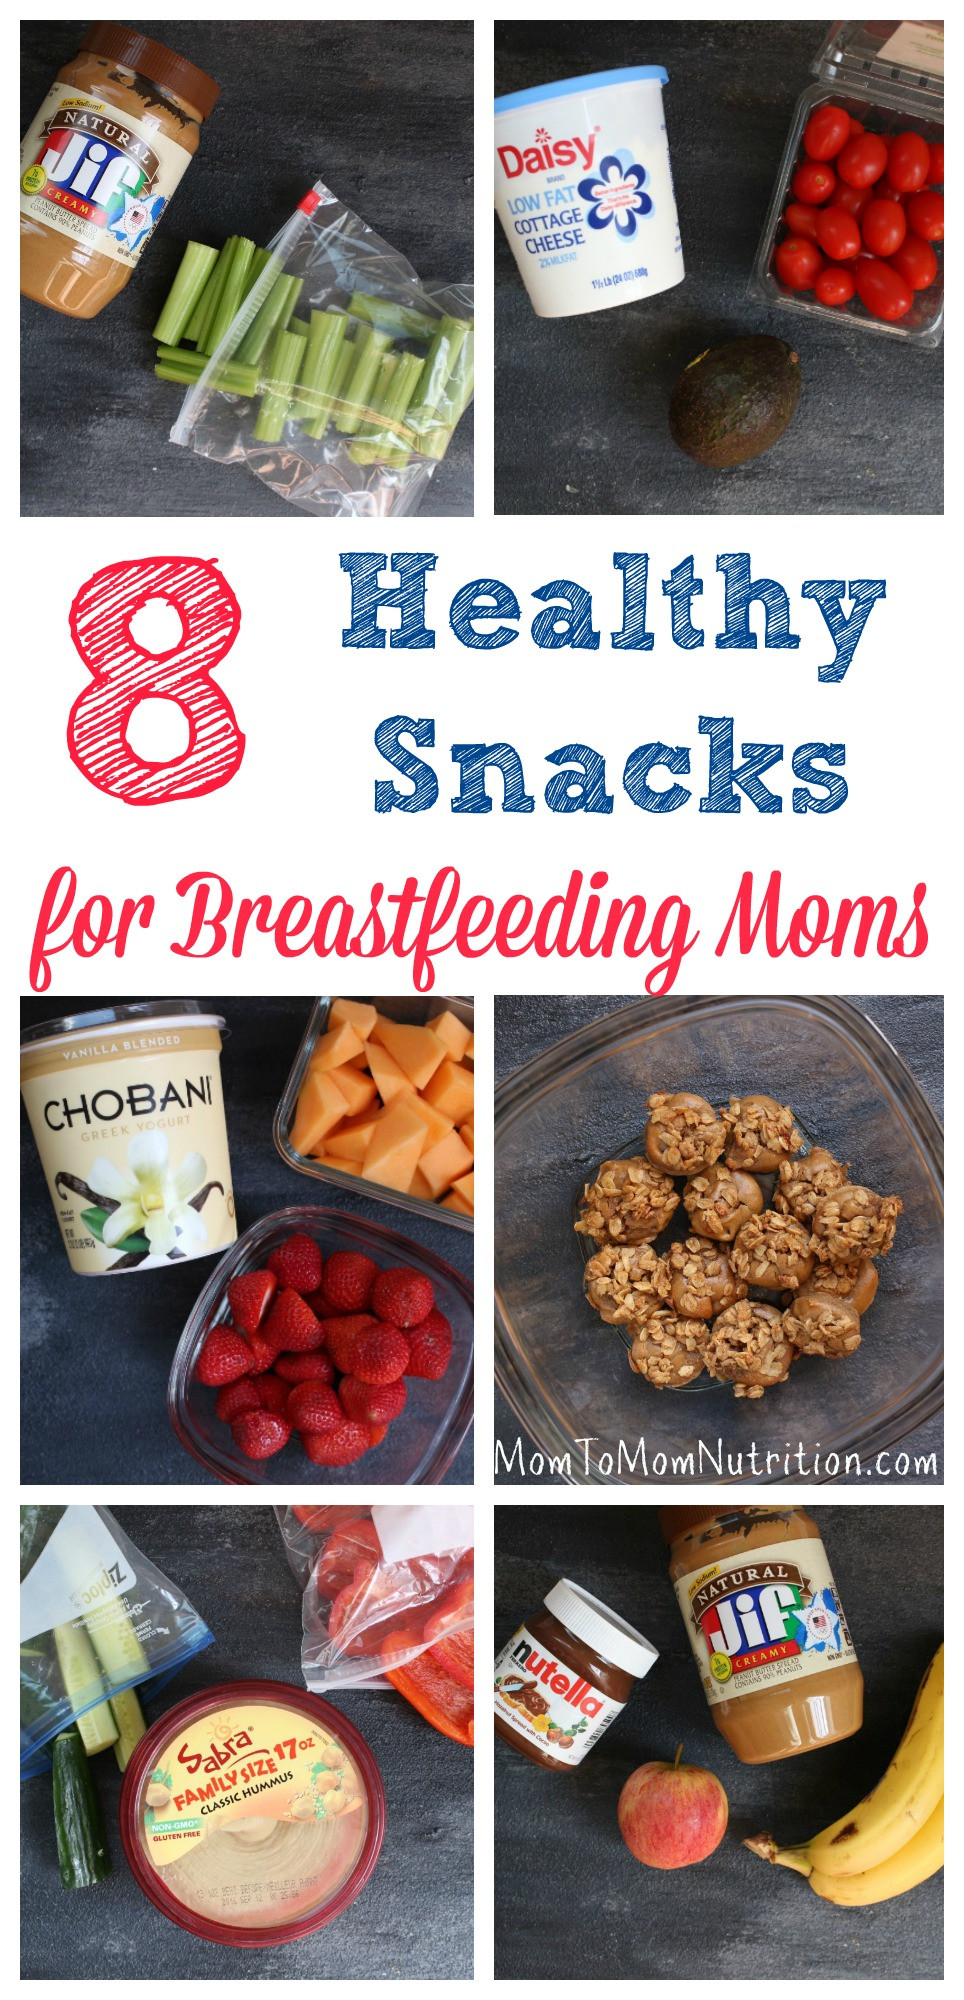 Healthy Grocery Snacks  8 Healthy Snacks for Breastfeeding Moms Mom to Mom Nutrition